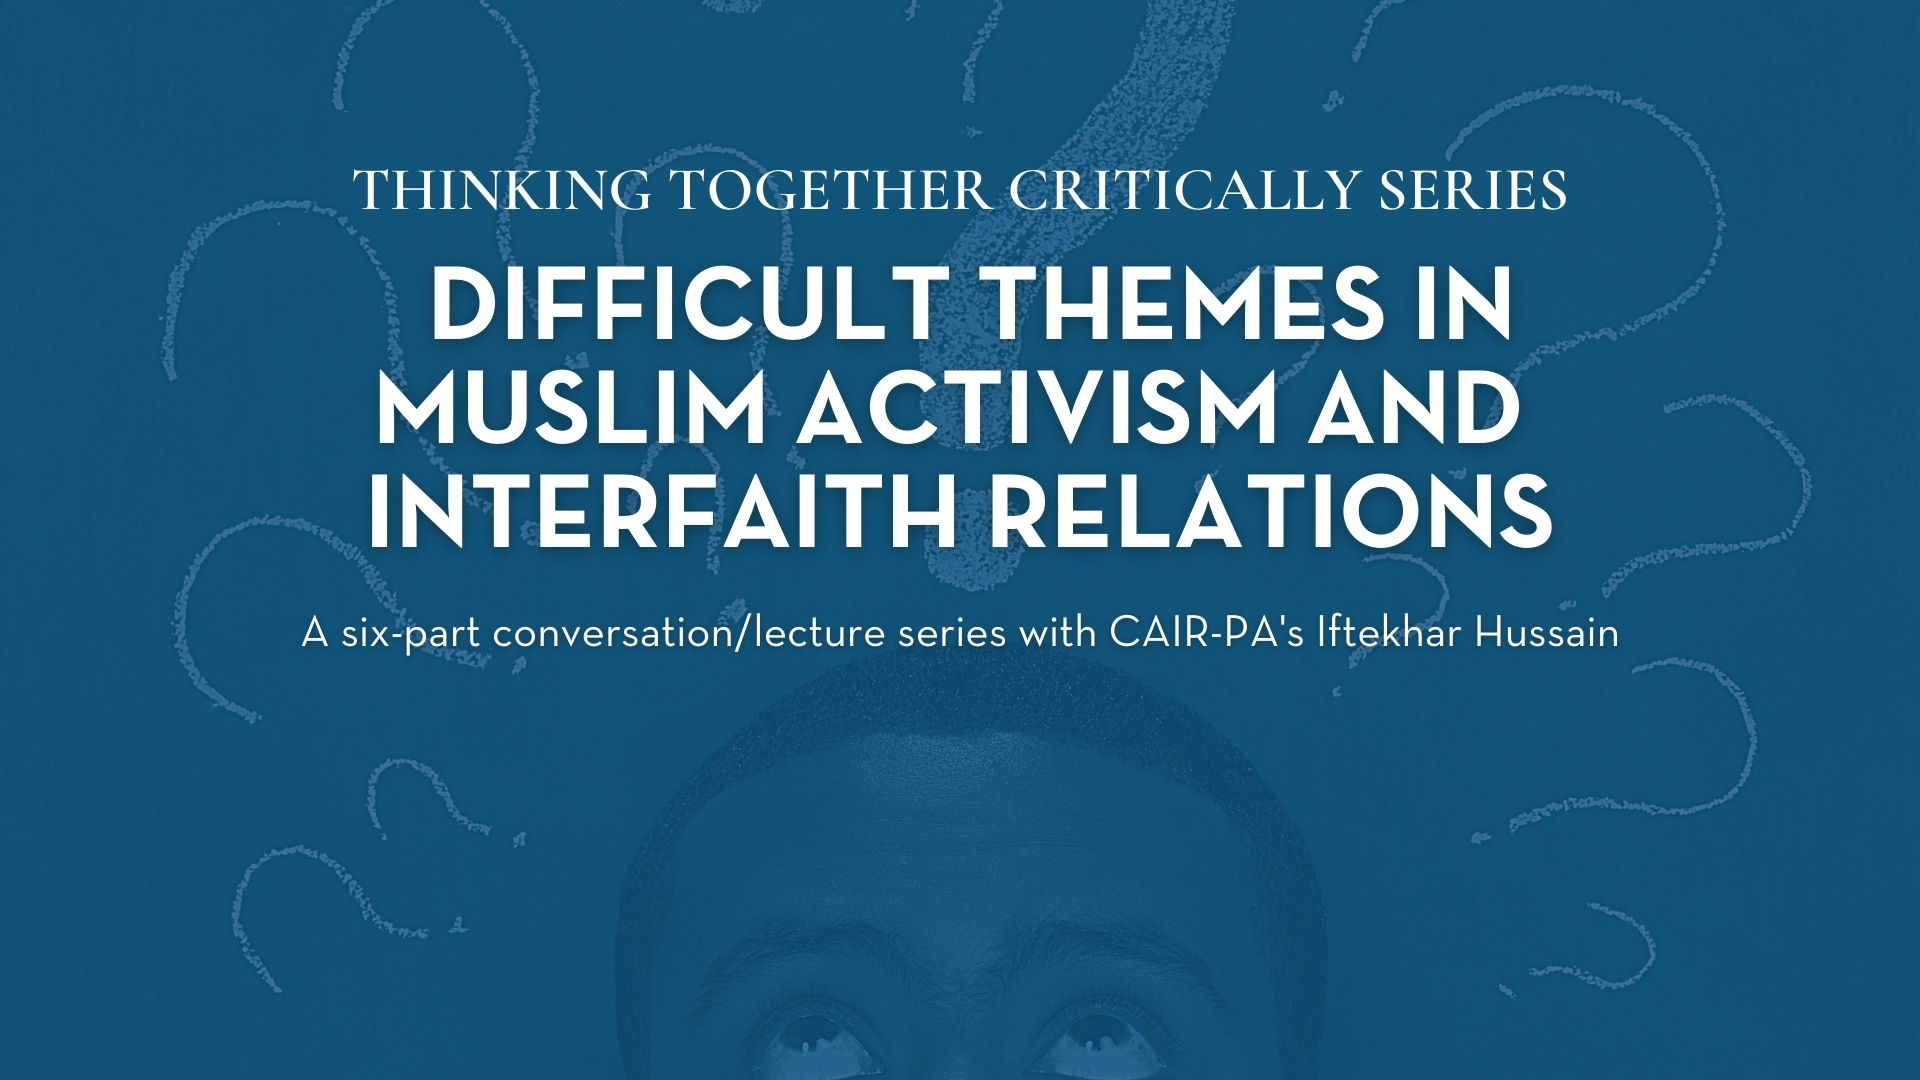 Difficult Themes in Muslim Activism and Interfaith Relations